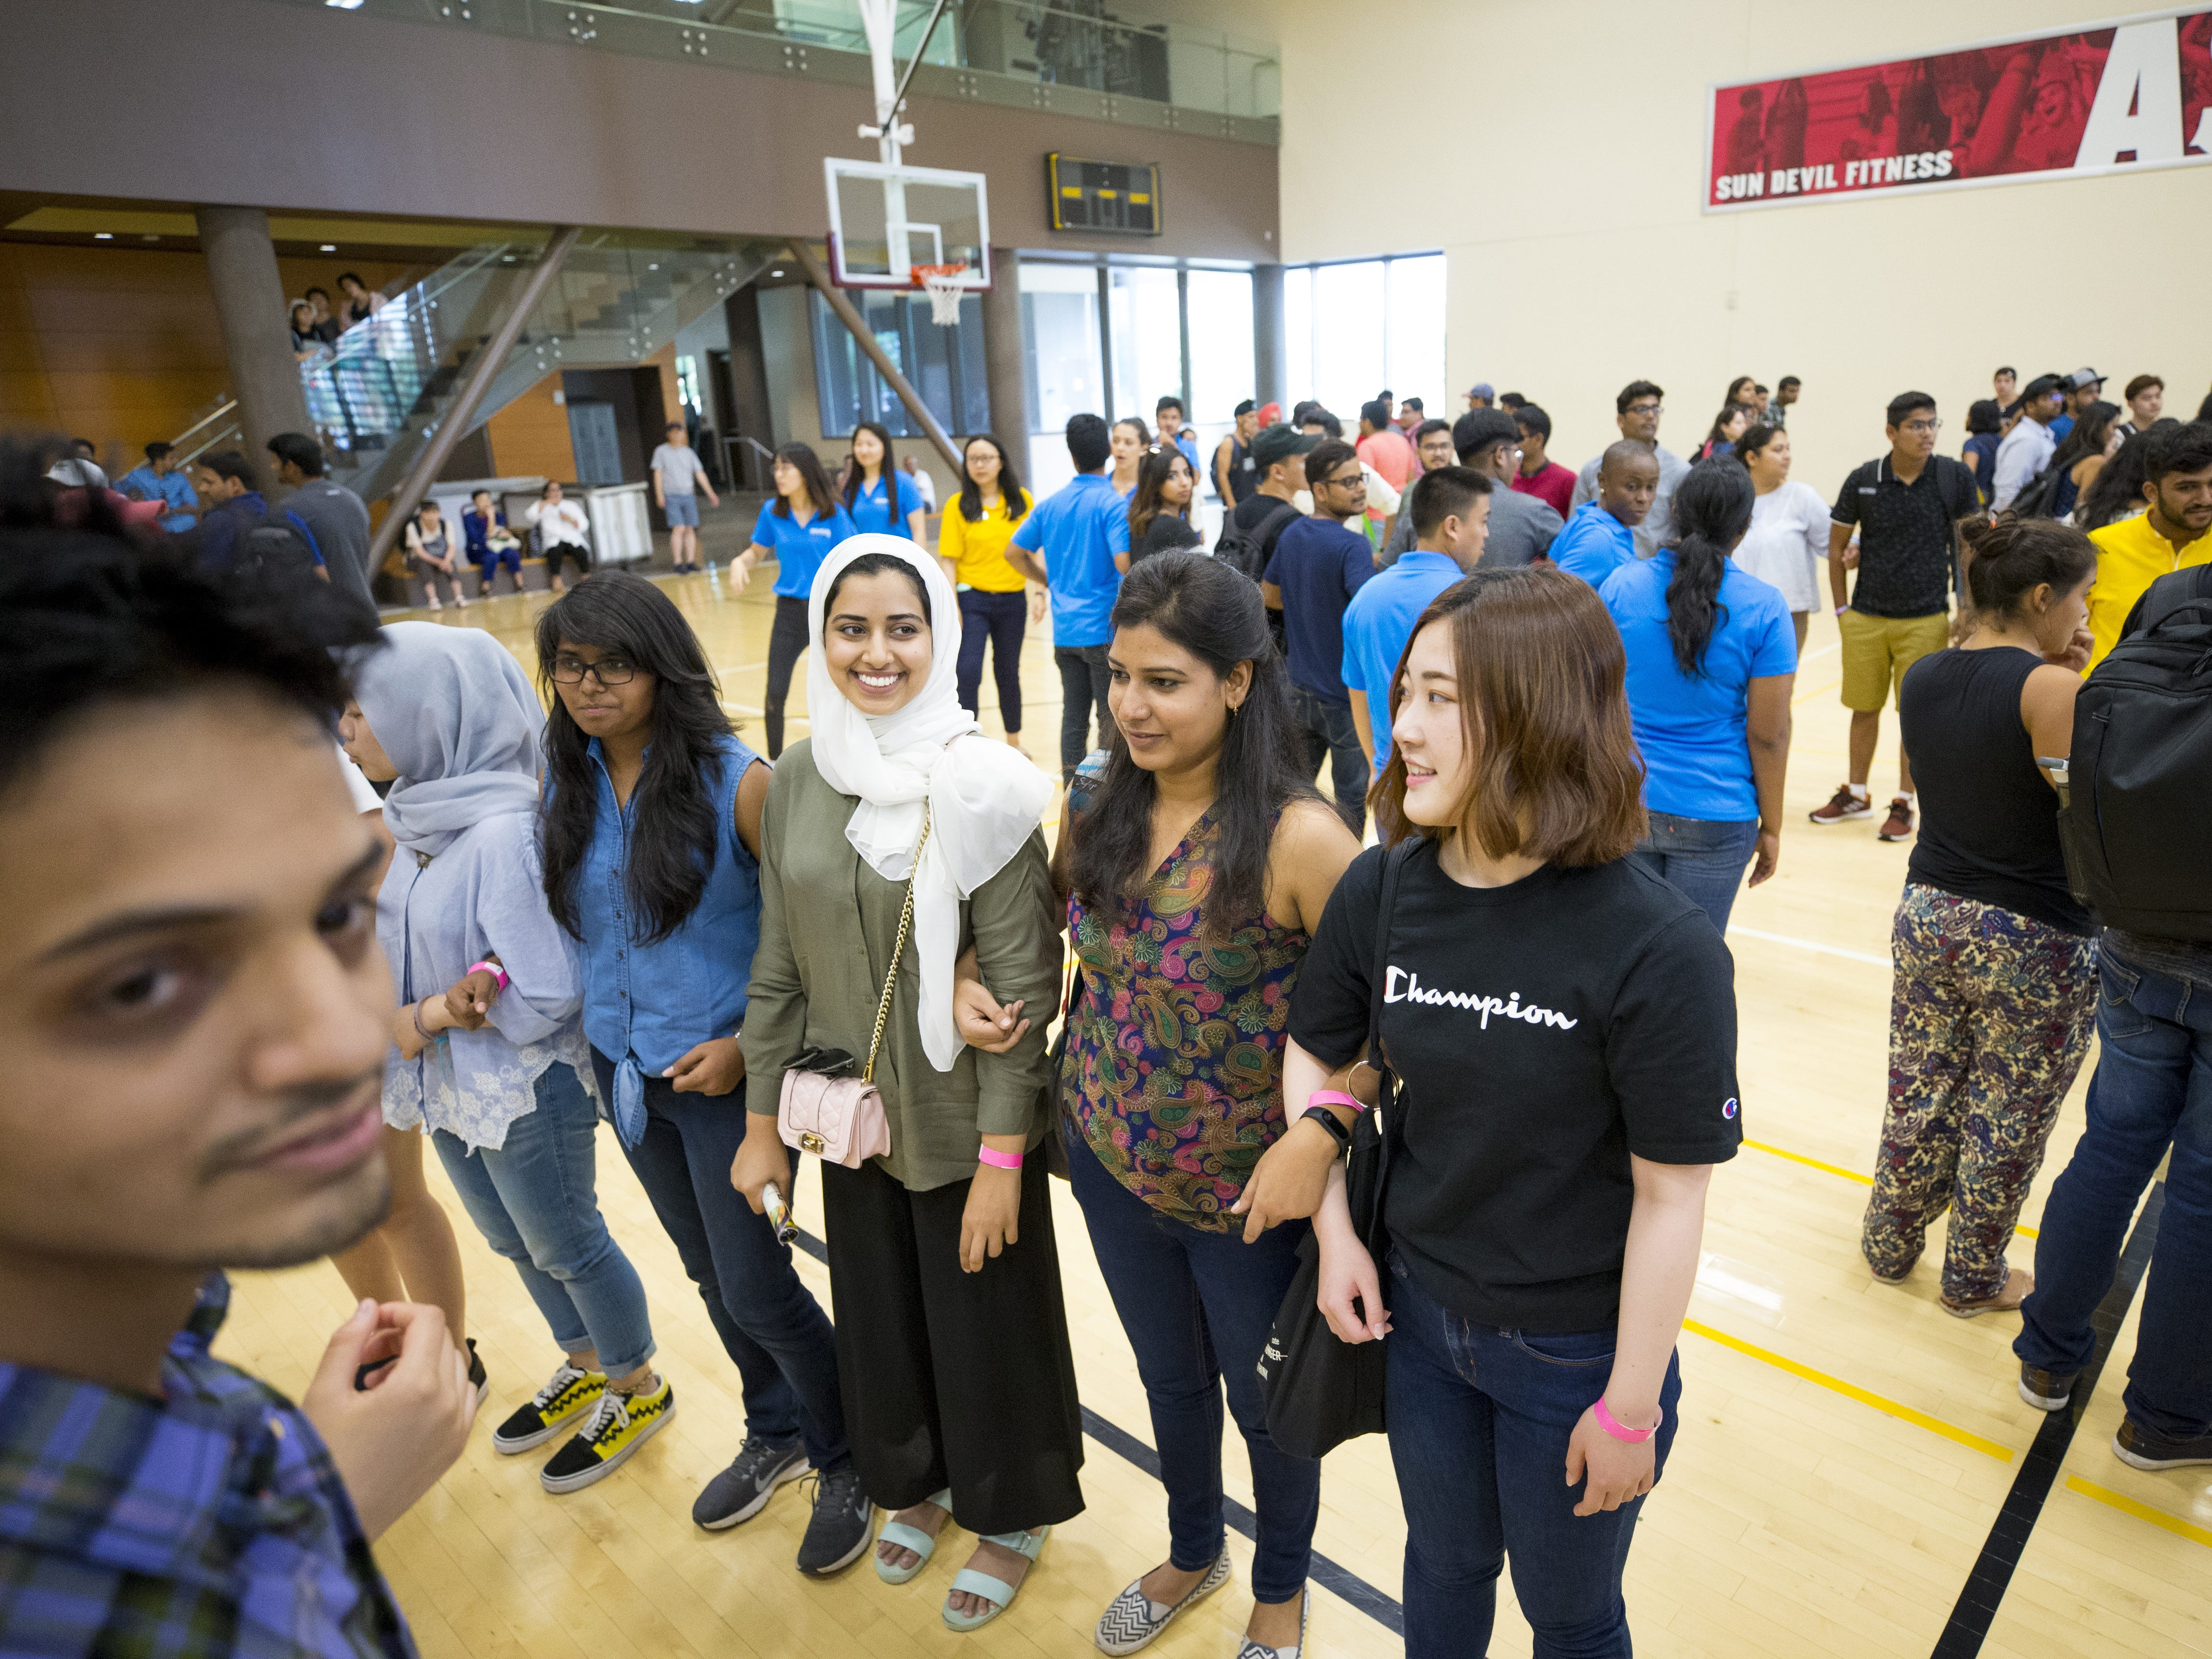 ASU international students Dania Alarfaj, from Saudi Arabia, Bhawana Prasad, from India, and Natsuki Kanno, from Japan, participate in Play Fair at the Sun Devil Fitness Center in Tempe during their orientation on Aug. 8, 2018.